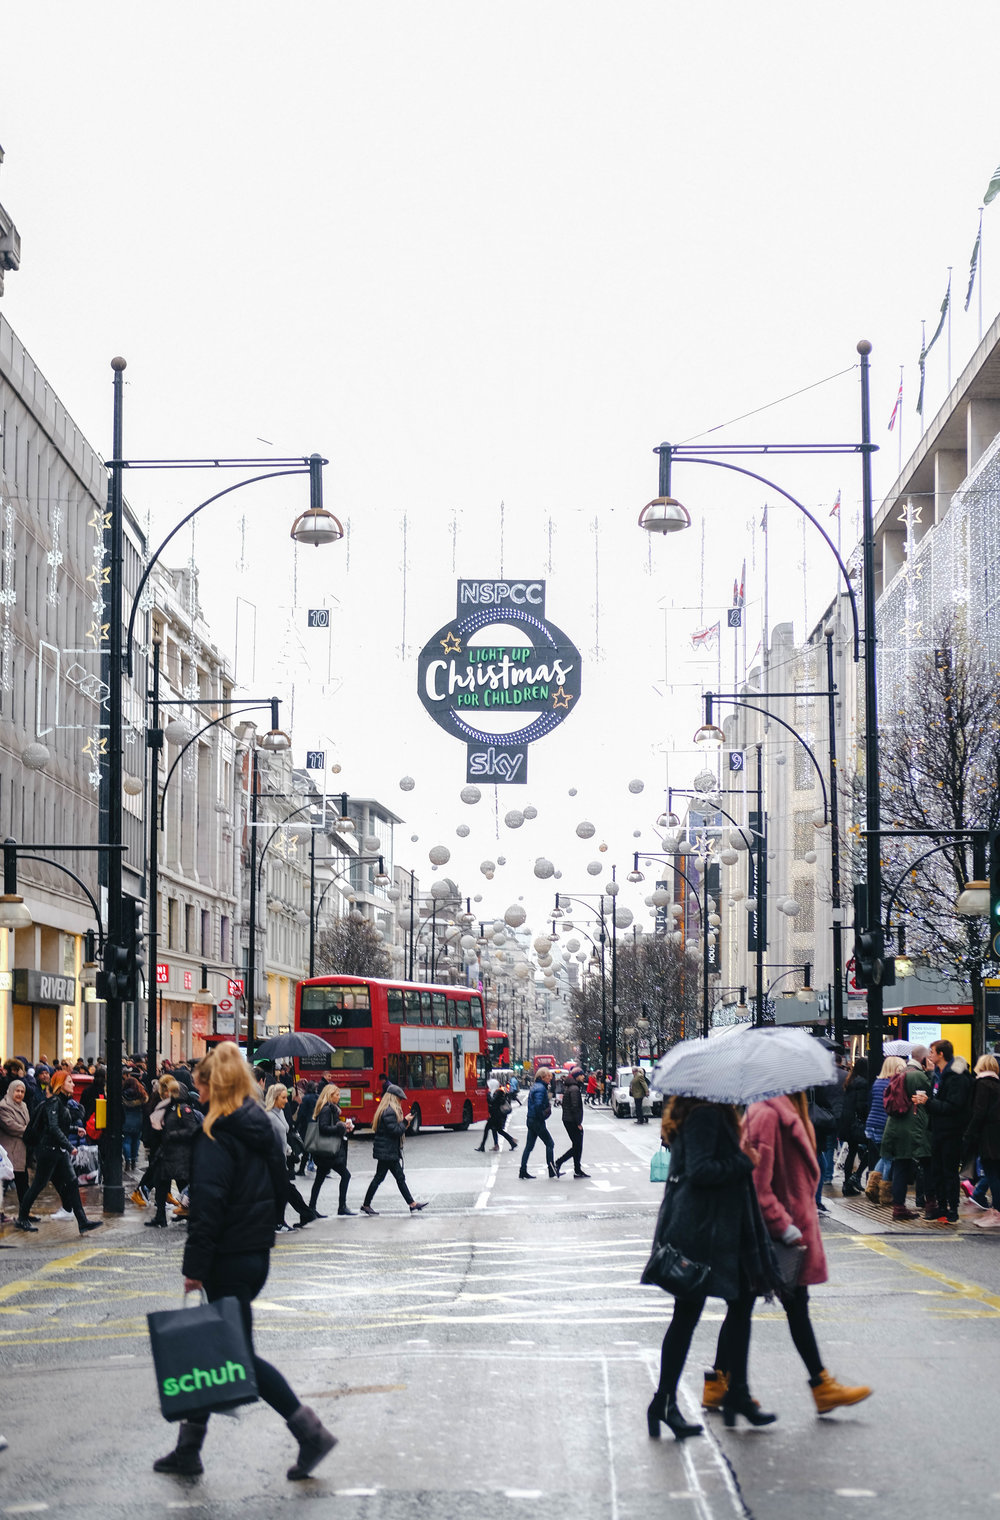 """<p style=""""font-family:brandon-grotesque;font-weight:500; font-size:11px; text-center:left; color:light grey;letter-spacing: 1px"""">DECEMBER 21, 2017 • CHRISTMAS ON OXFORD ST. • 📍 London, UK</p>"""